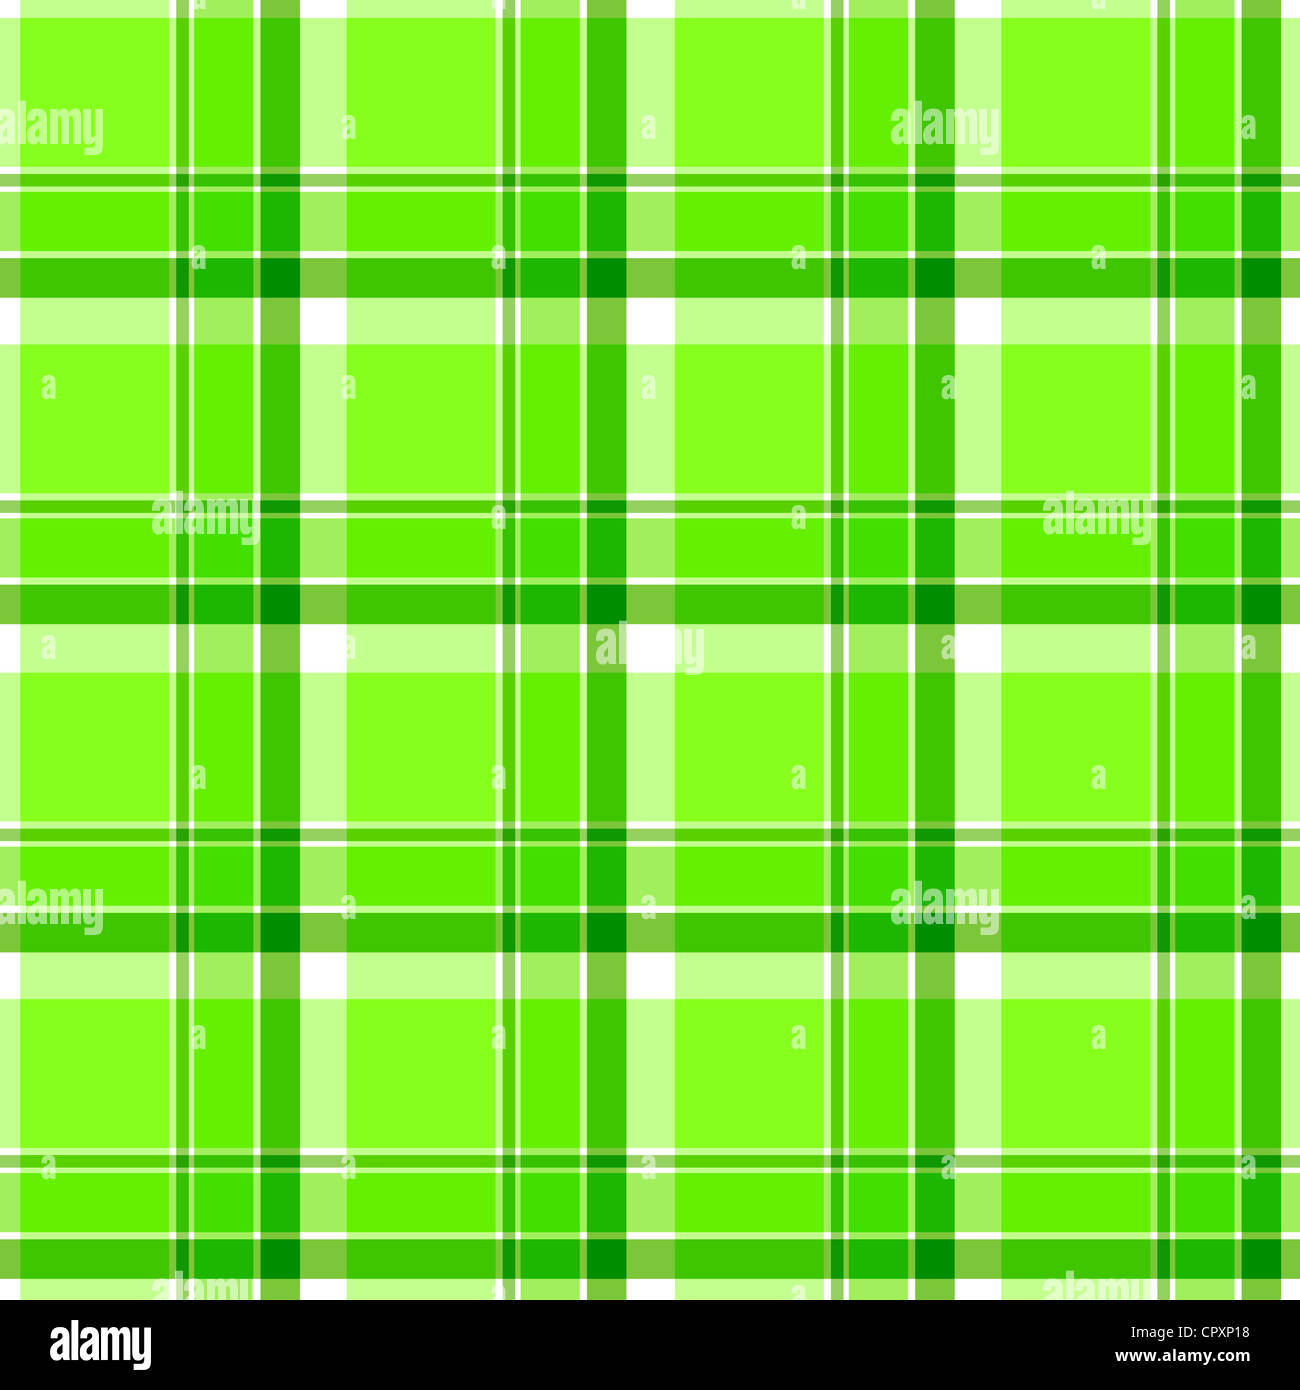 Plaid pattern in shades of green Stock Photo